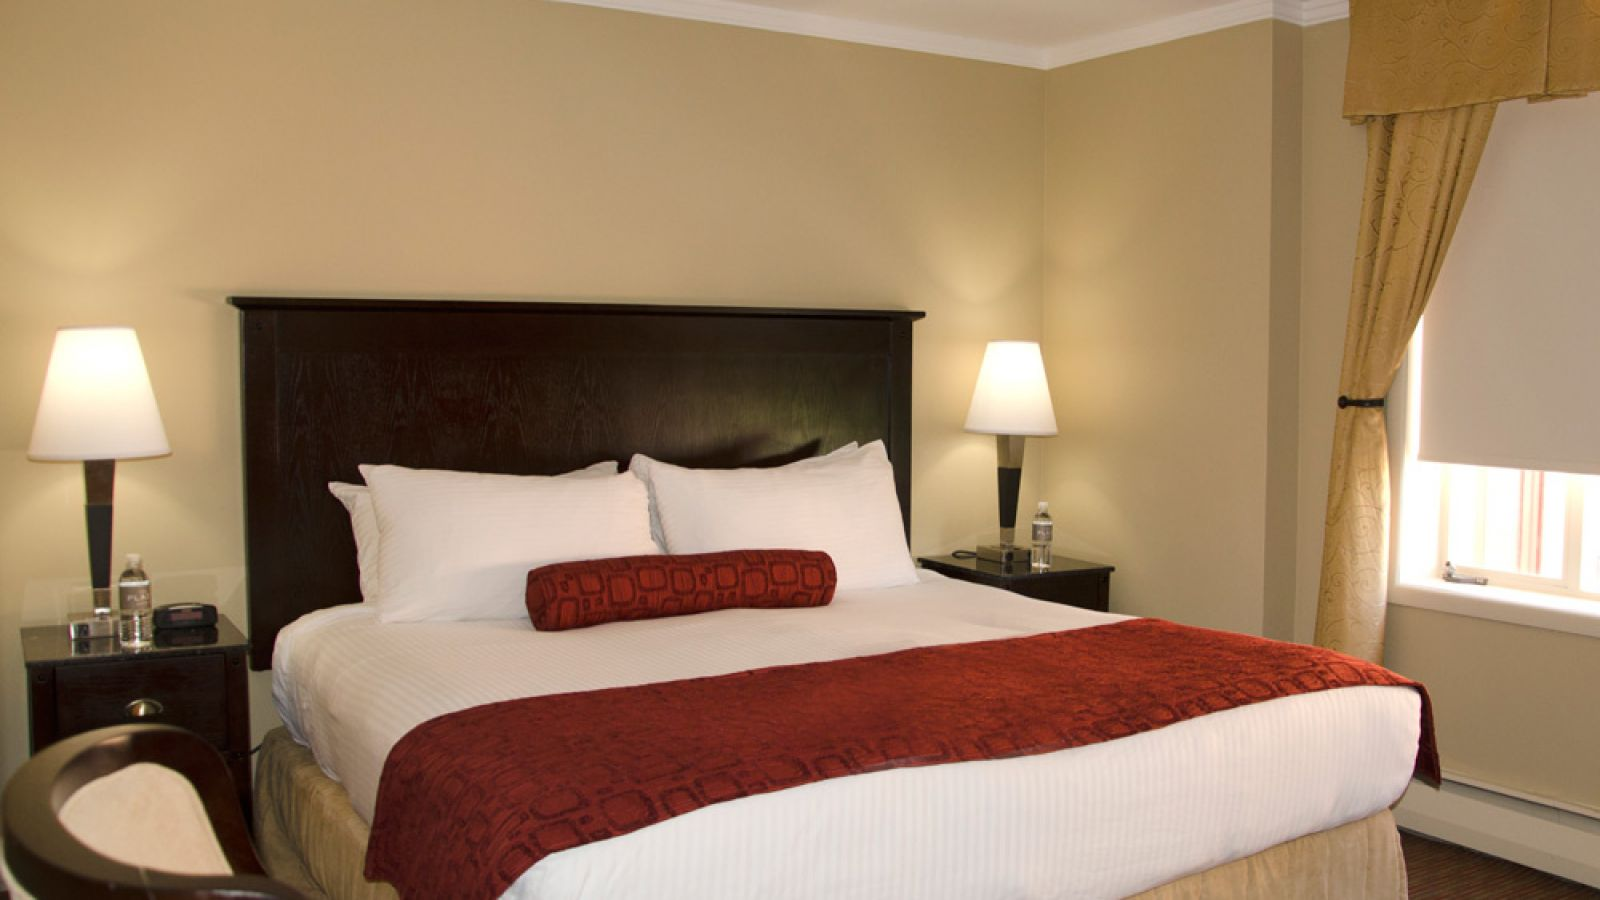 Plaza Hotel Kamloops - Standard King room